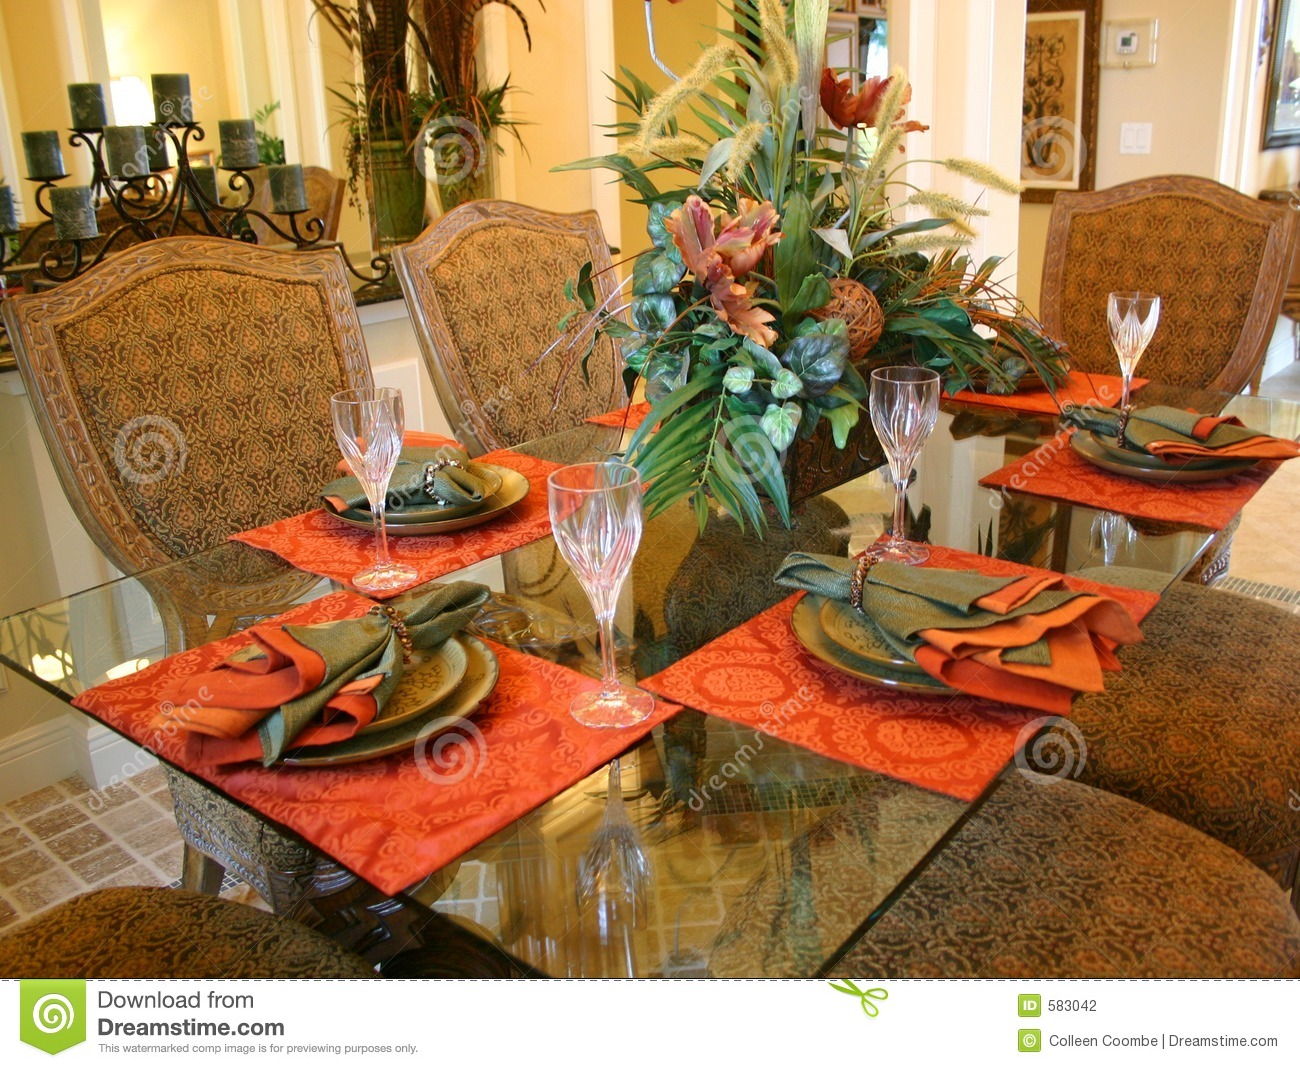 Formal Dining Room stock photo Image of table orange  : formal dining room 583042 from www.dreamstime.com size 1300 x 1068 jpeg 474kB